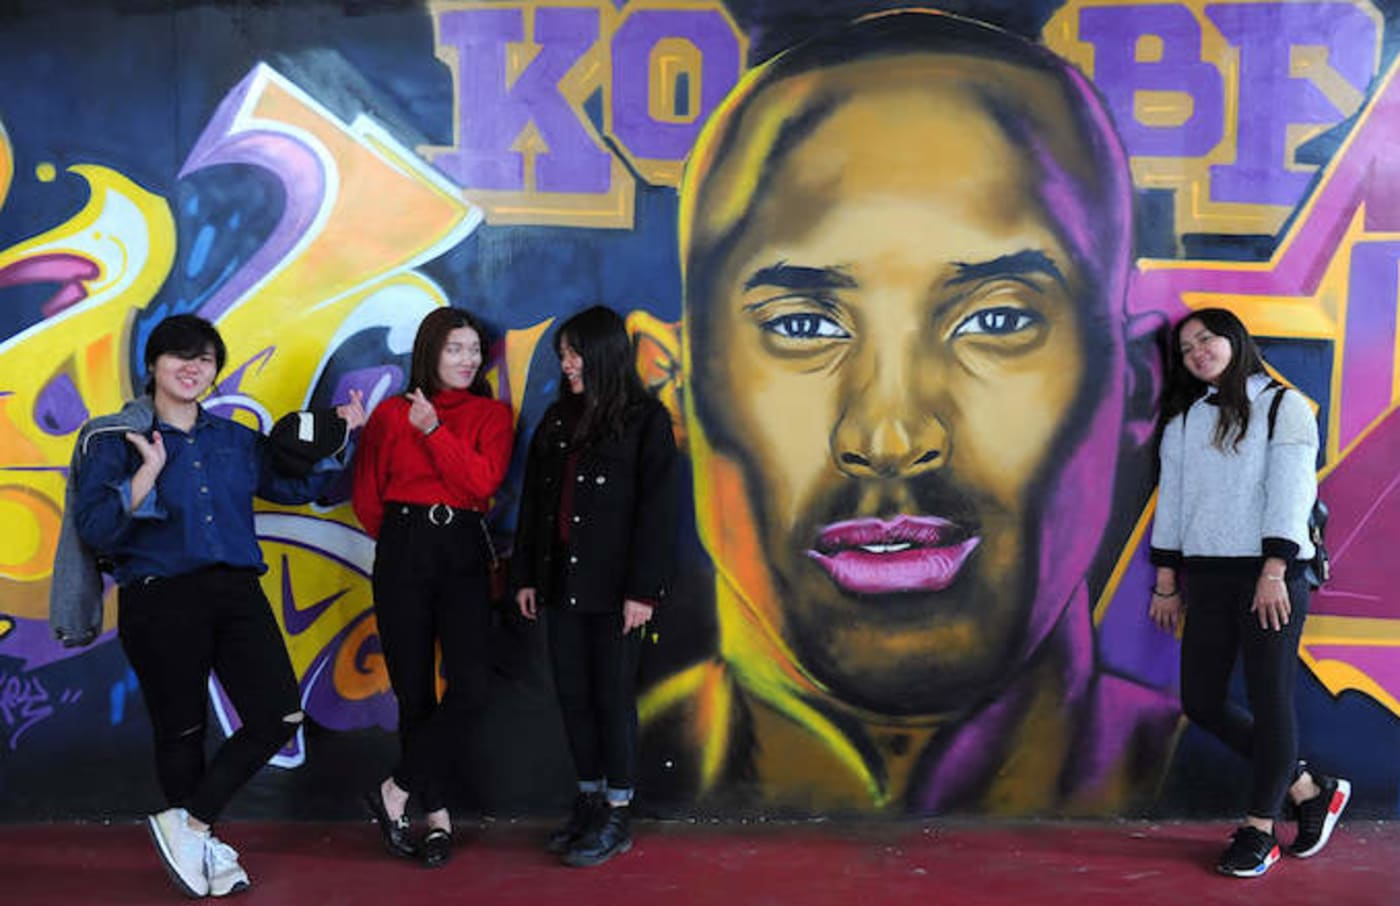 Kobe Bryant mural with young adults